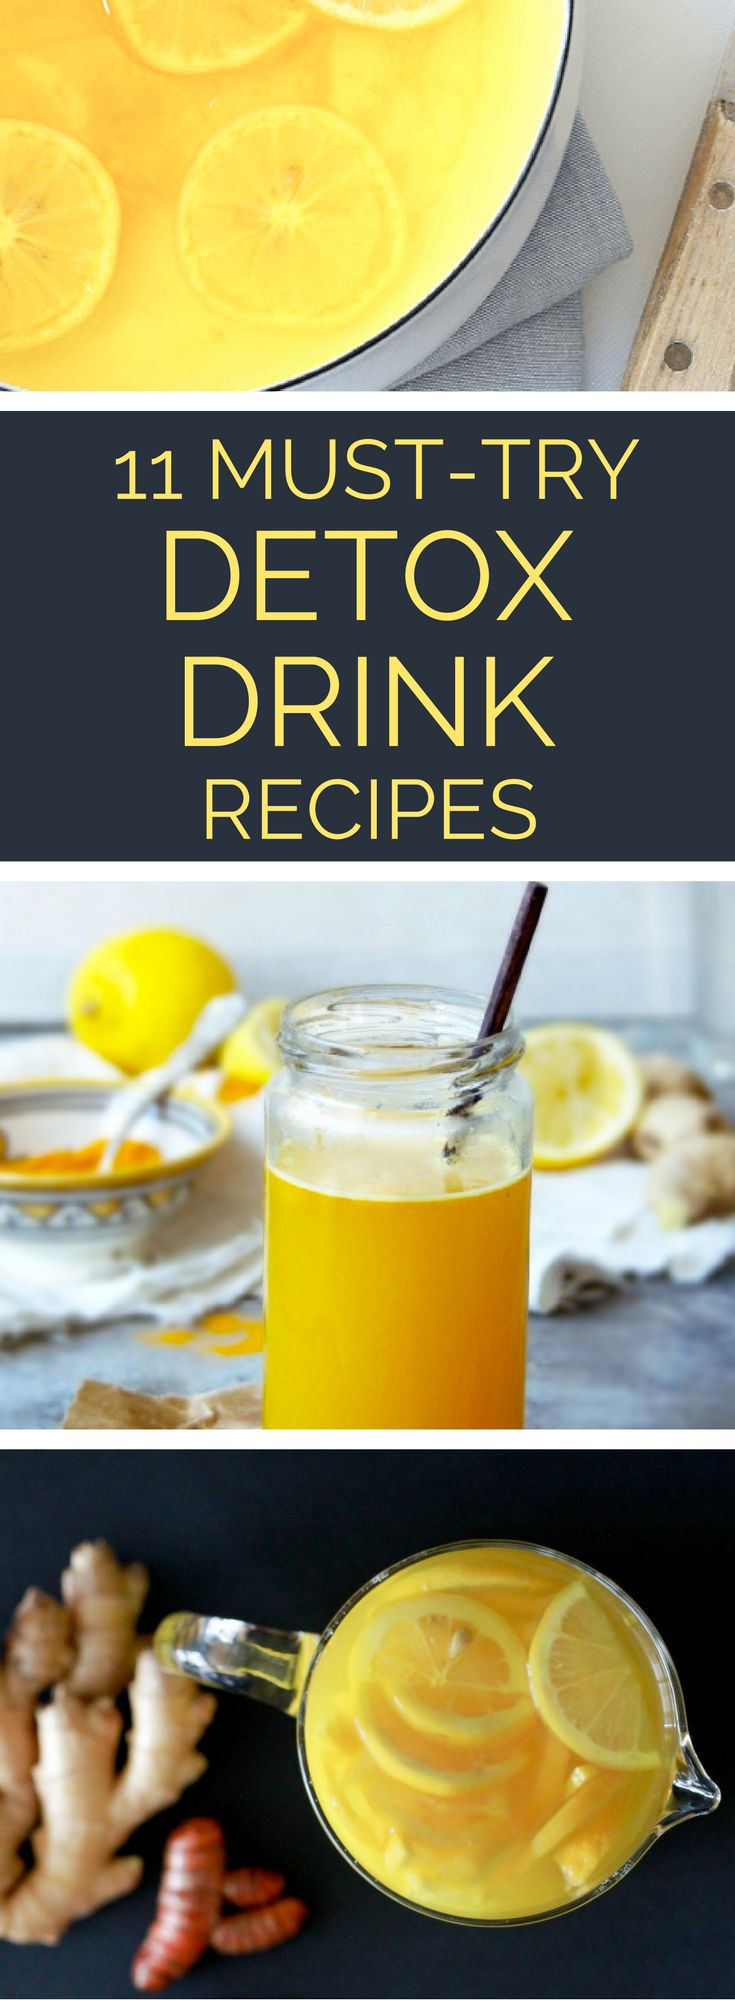 In need of a cleanse? These refreshing detox drink recipes are just what the doctor ordered! Mix one up and get ready to feel refreshed. // spryliving.com